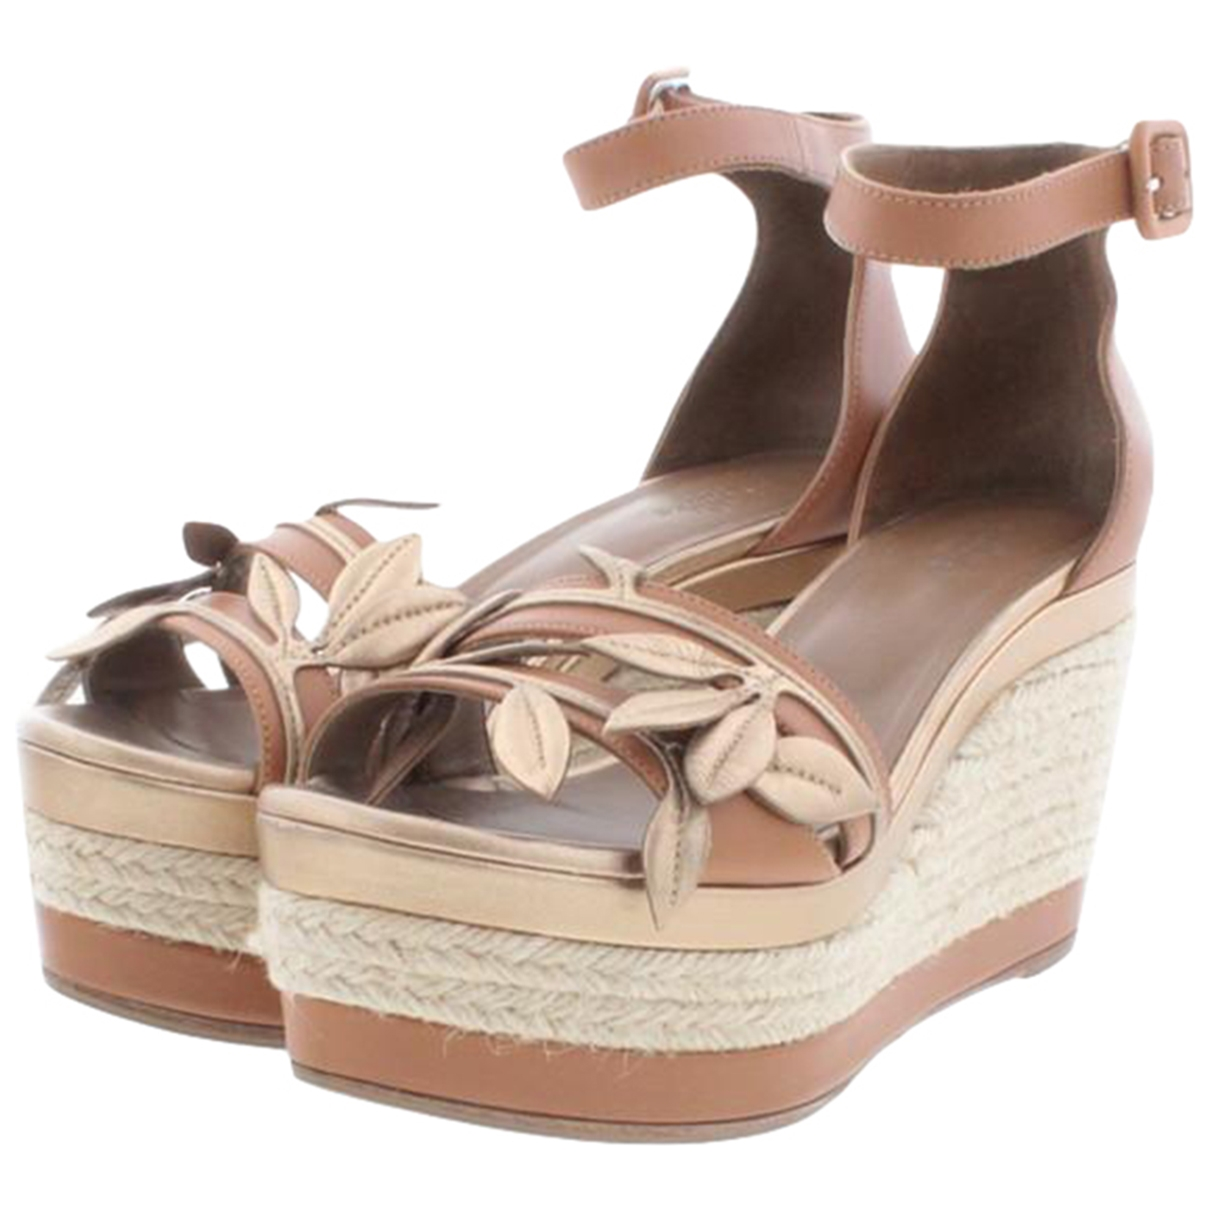 Hermès \N Brown Leather Sandals for Women 36 EU